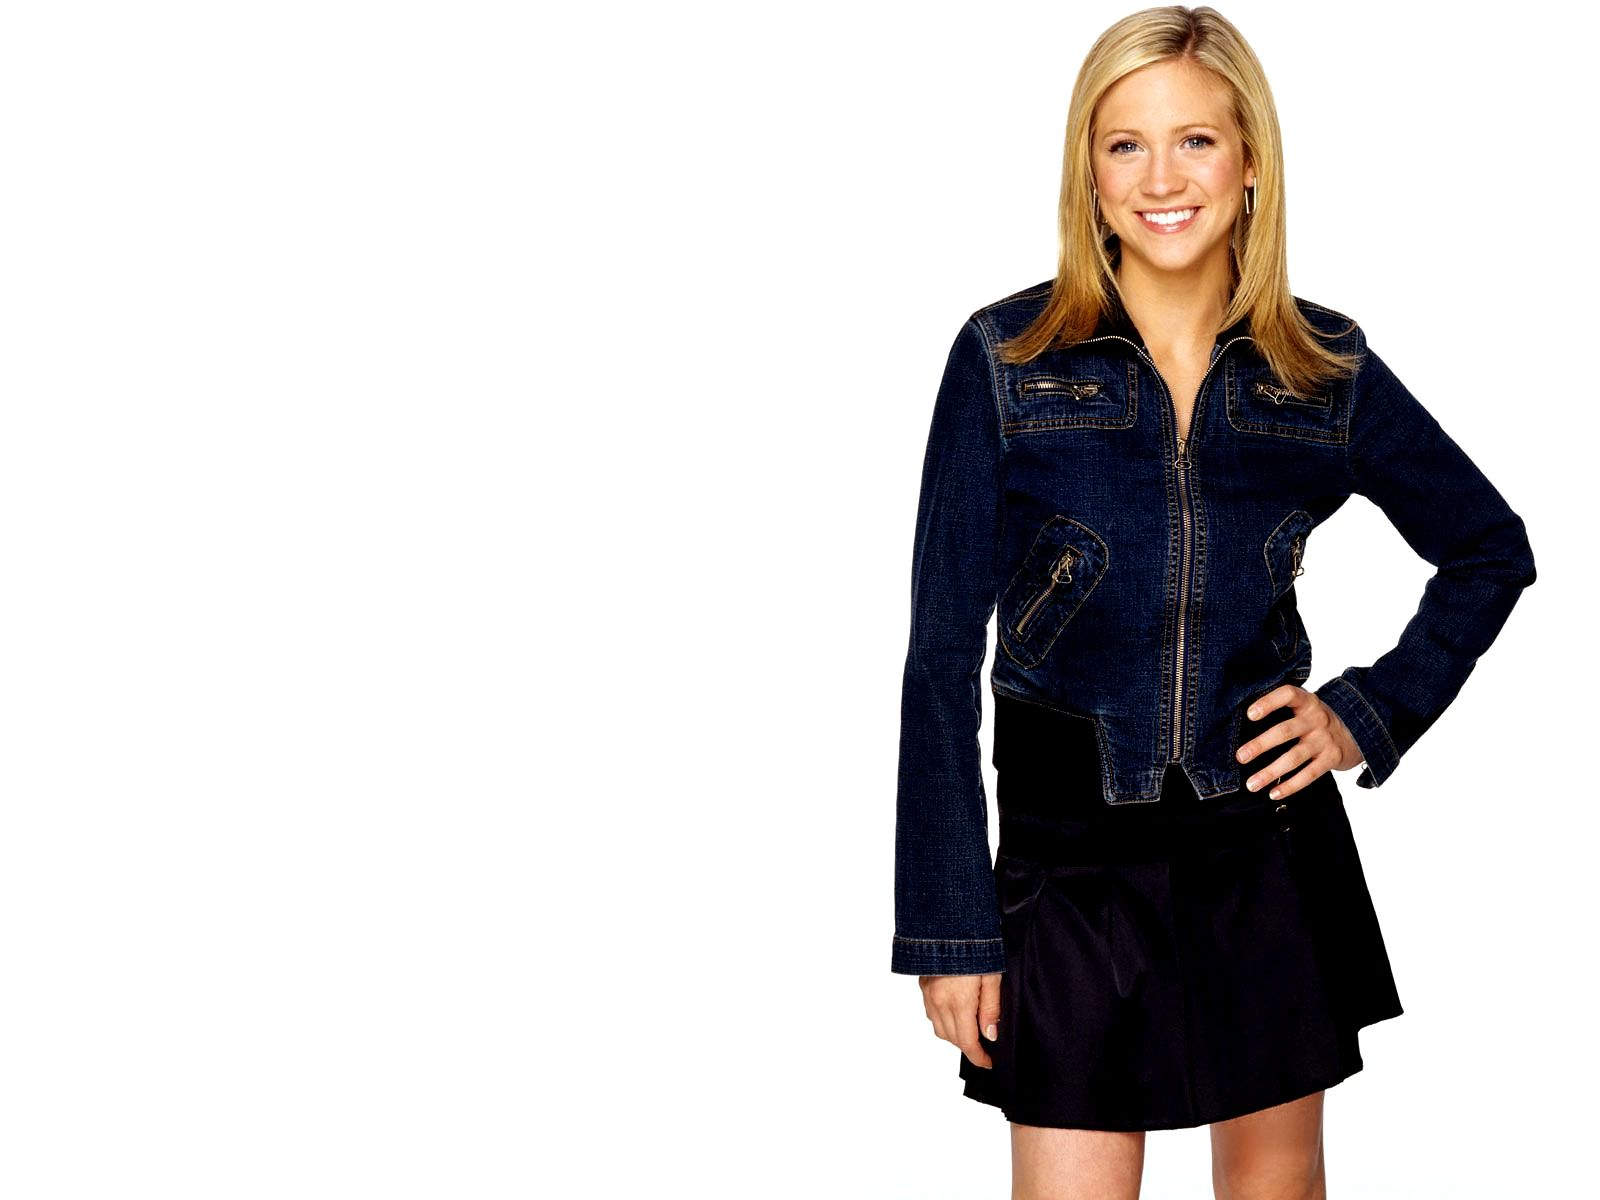 1600x1200 - Brittany Snow Wallpapers 16